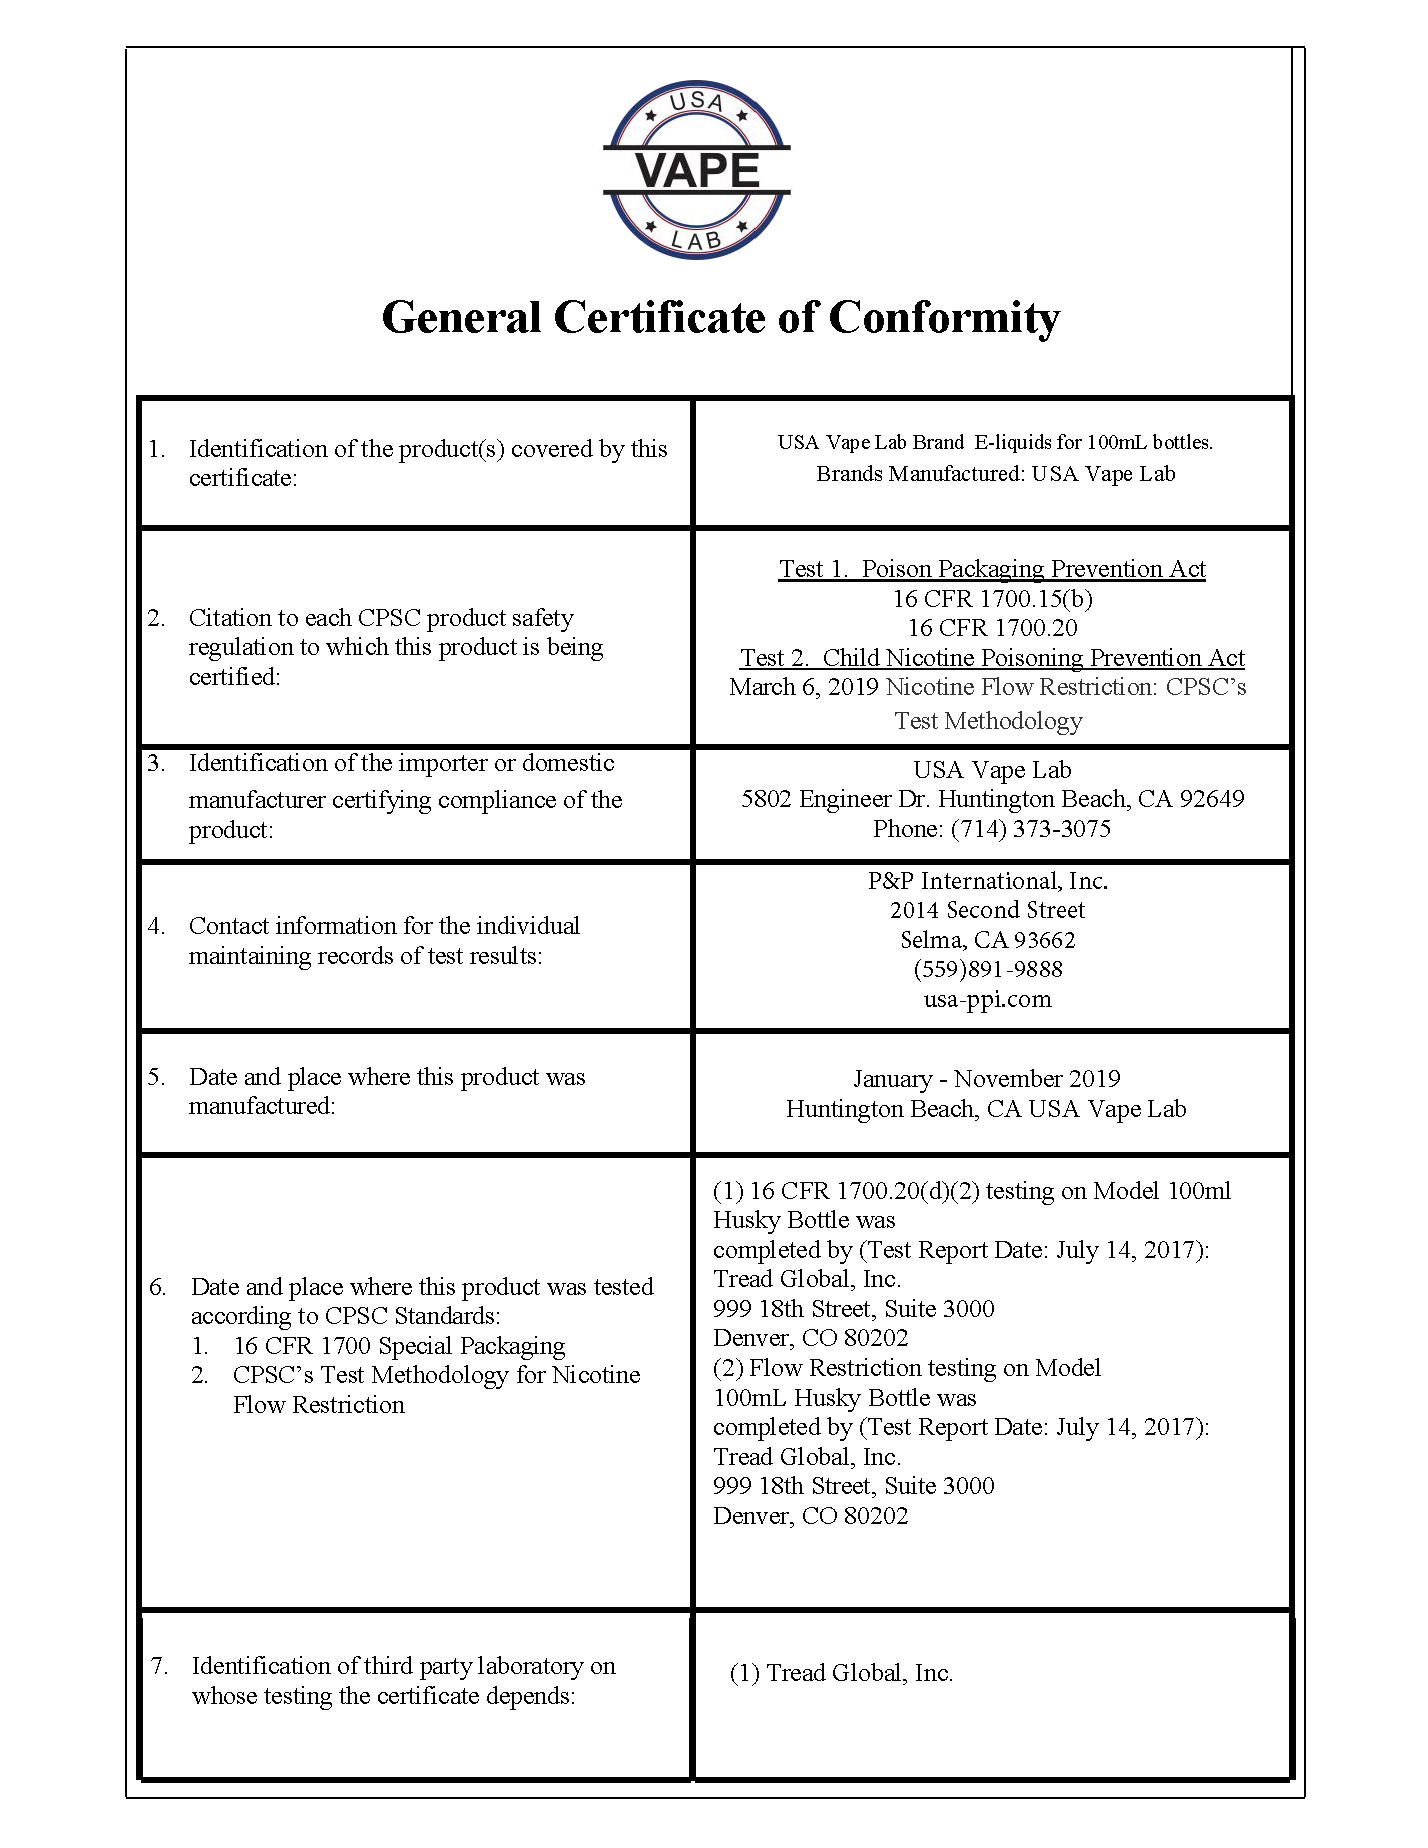 USA Vape Lab General Certificate of Conformity - Page 3